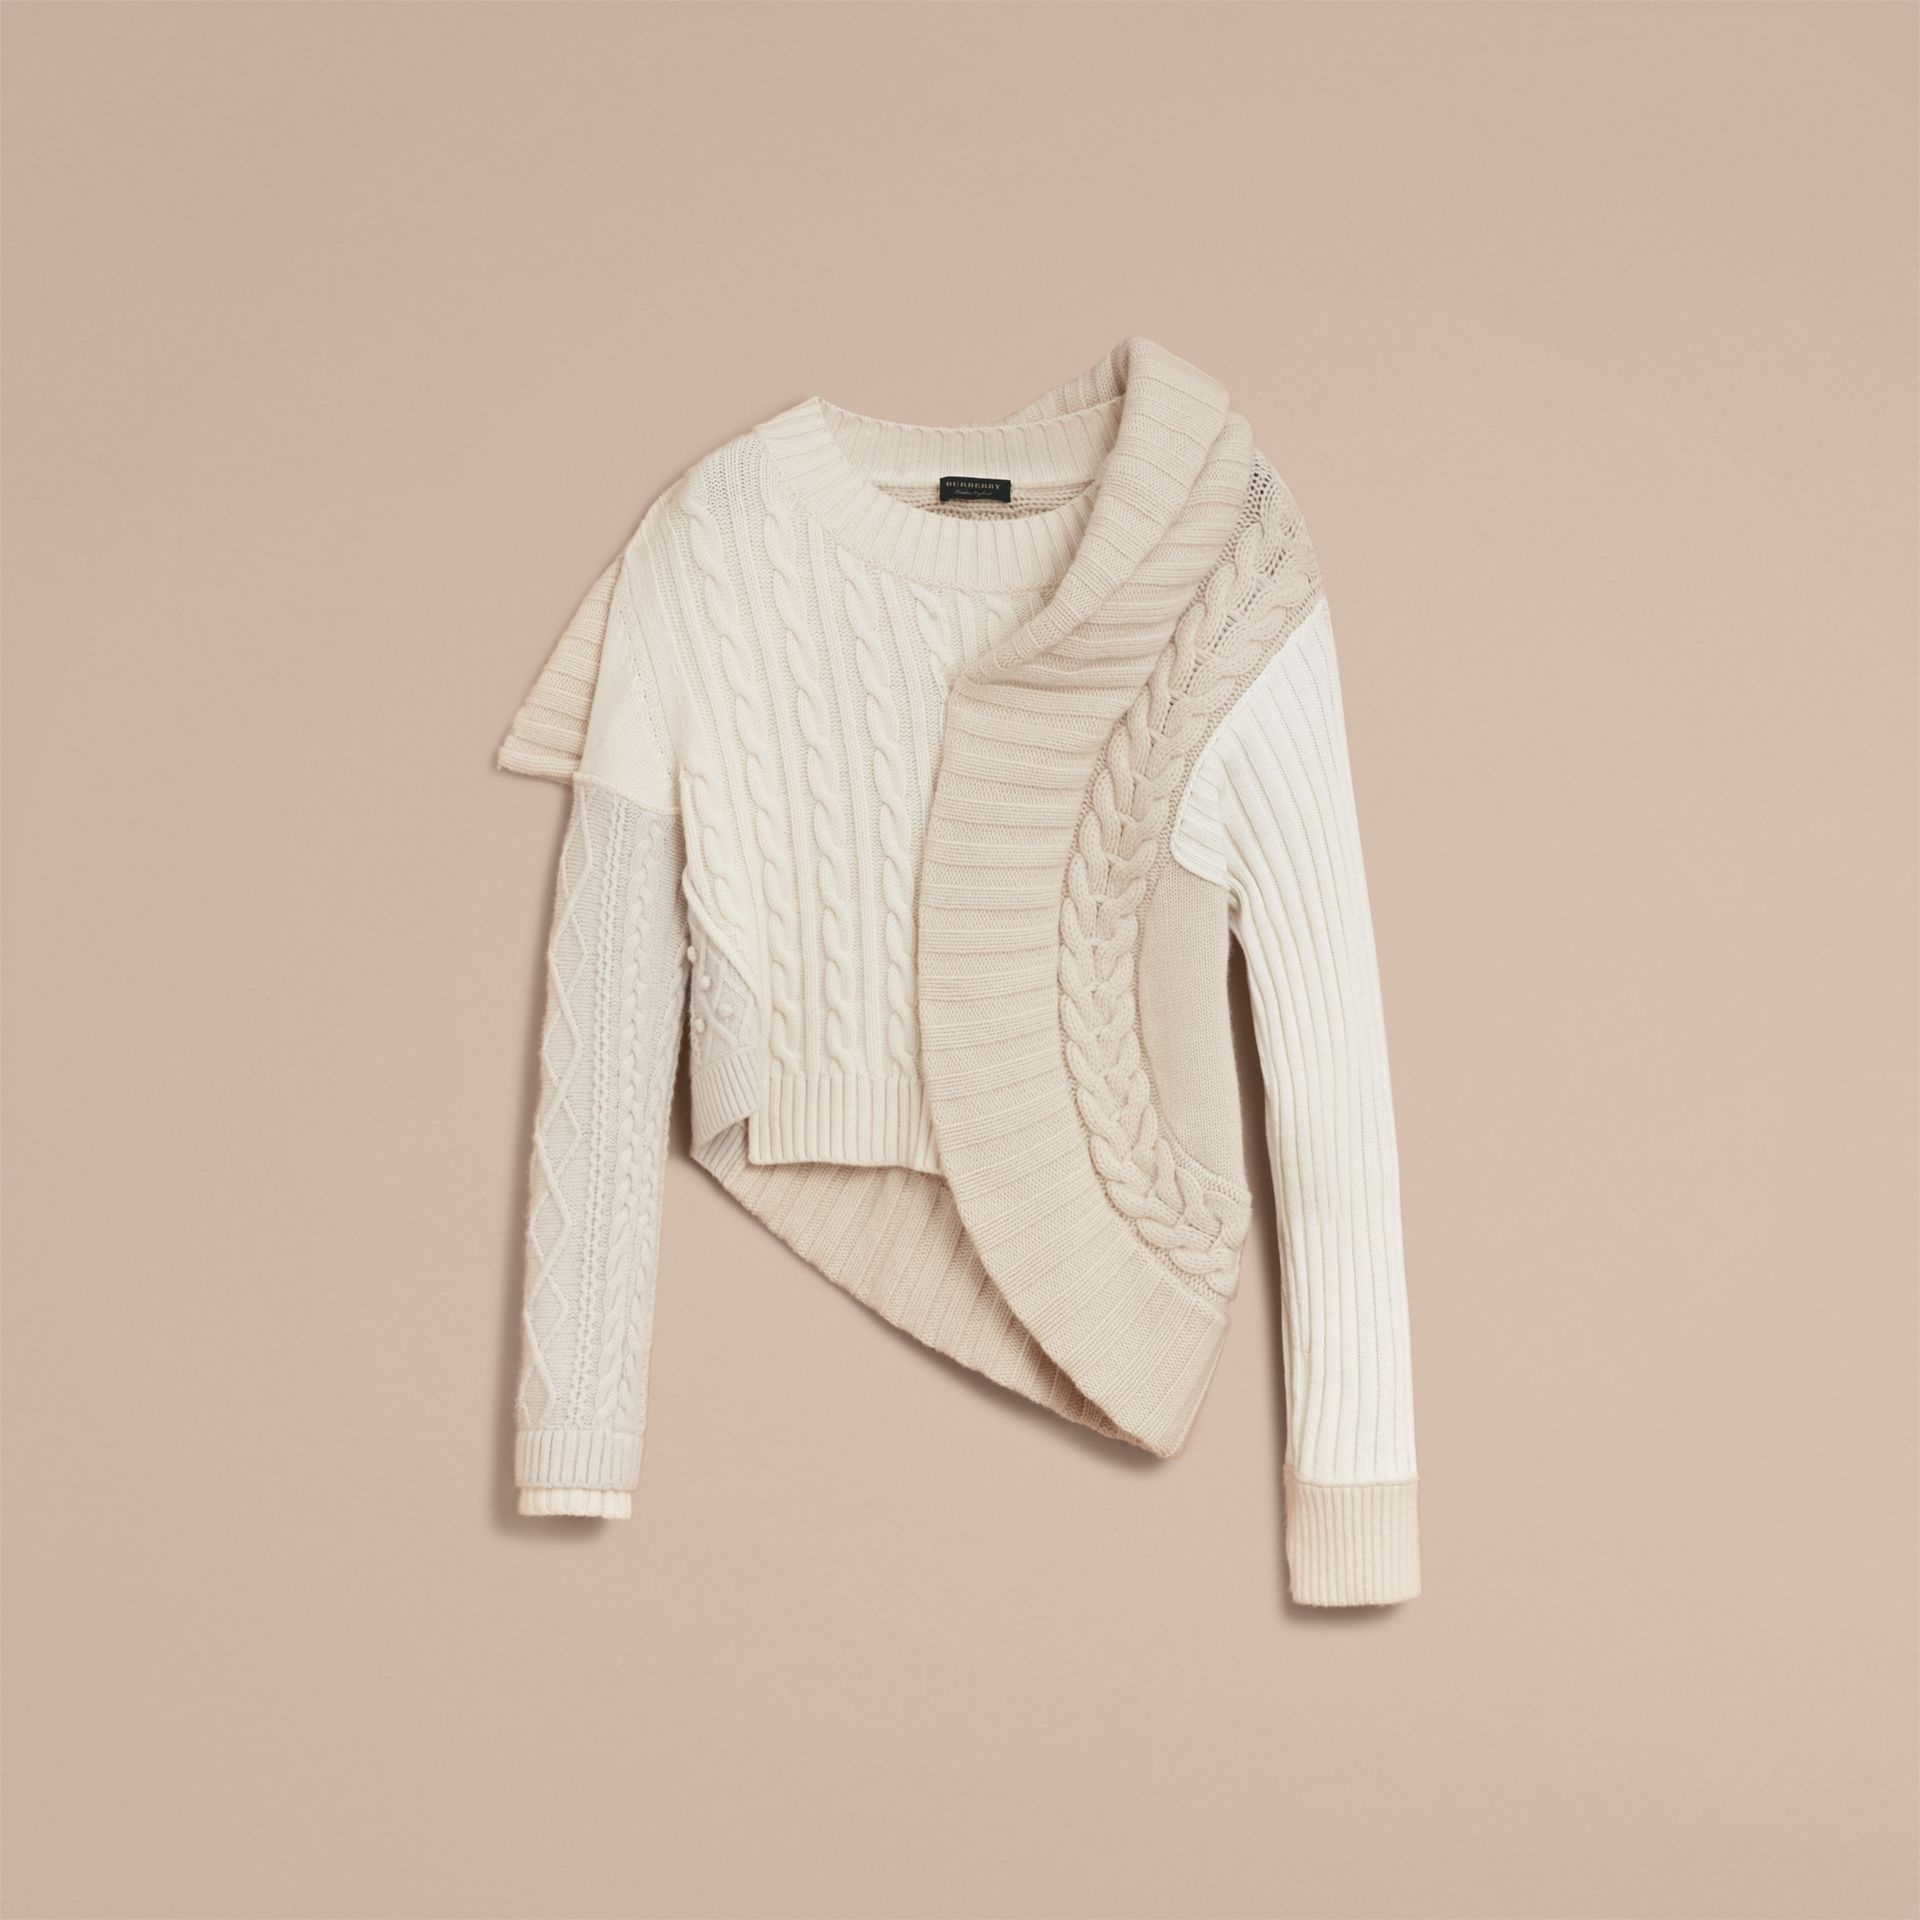 Panelled Cashmere, Cotton and Wool Sweater in Natural White - Women | Burberry Canada - gallery image 4